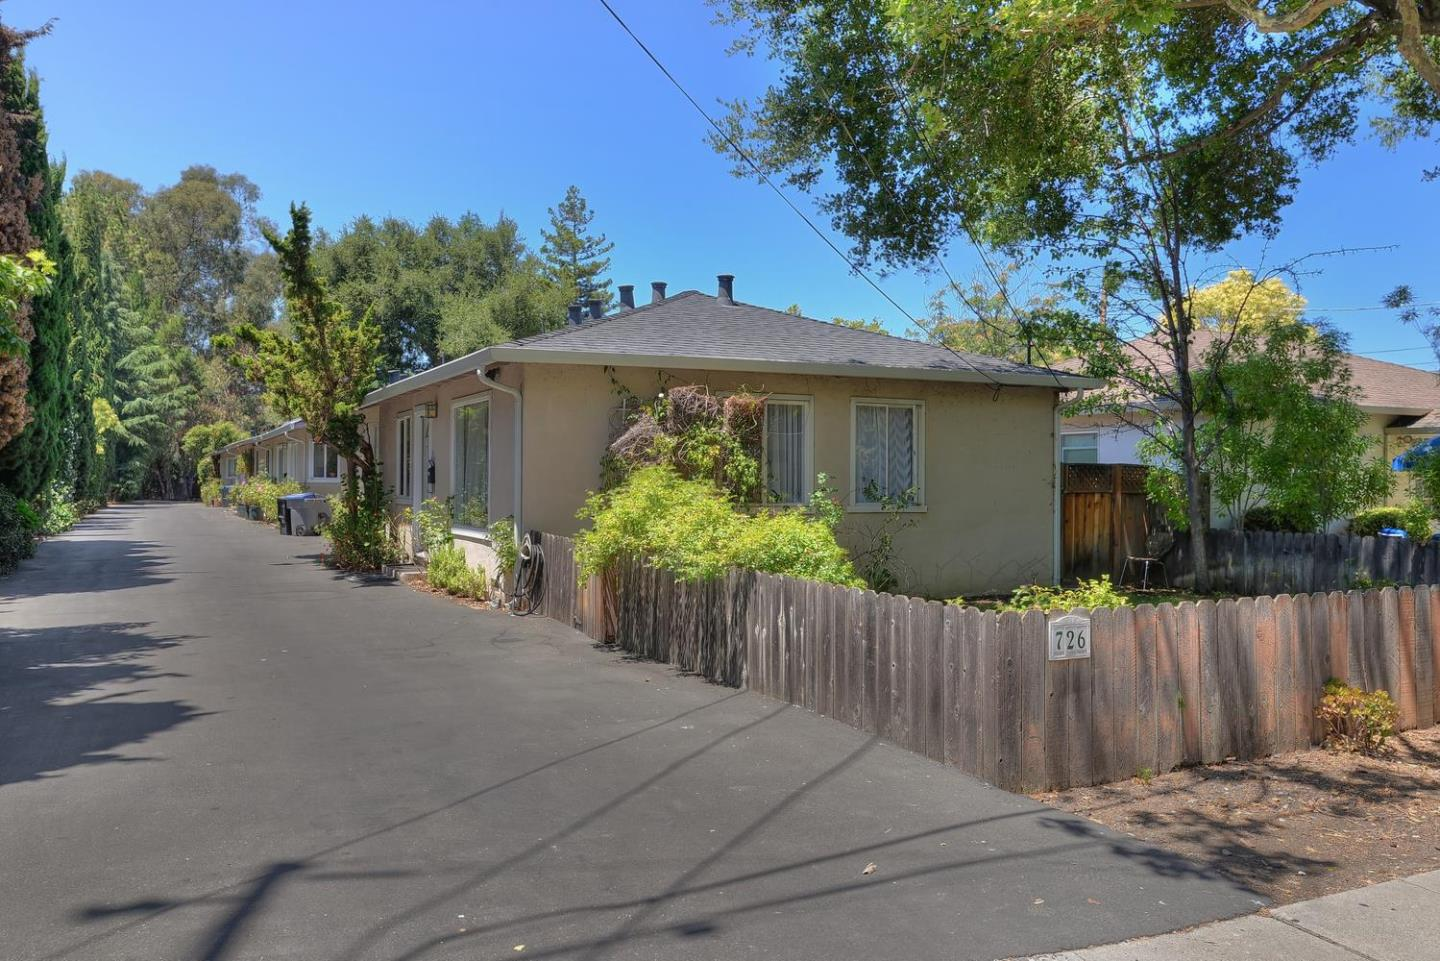 Multi-Family Home for Sale at 726 Mariposa Avenue Mountain View, California 94041 United States